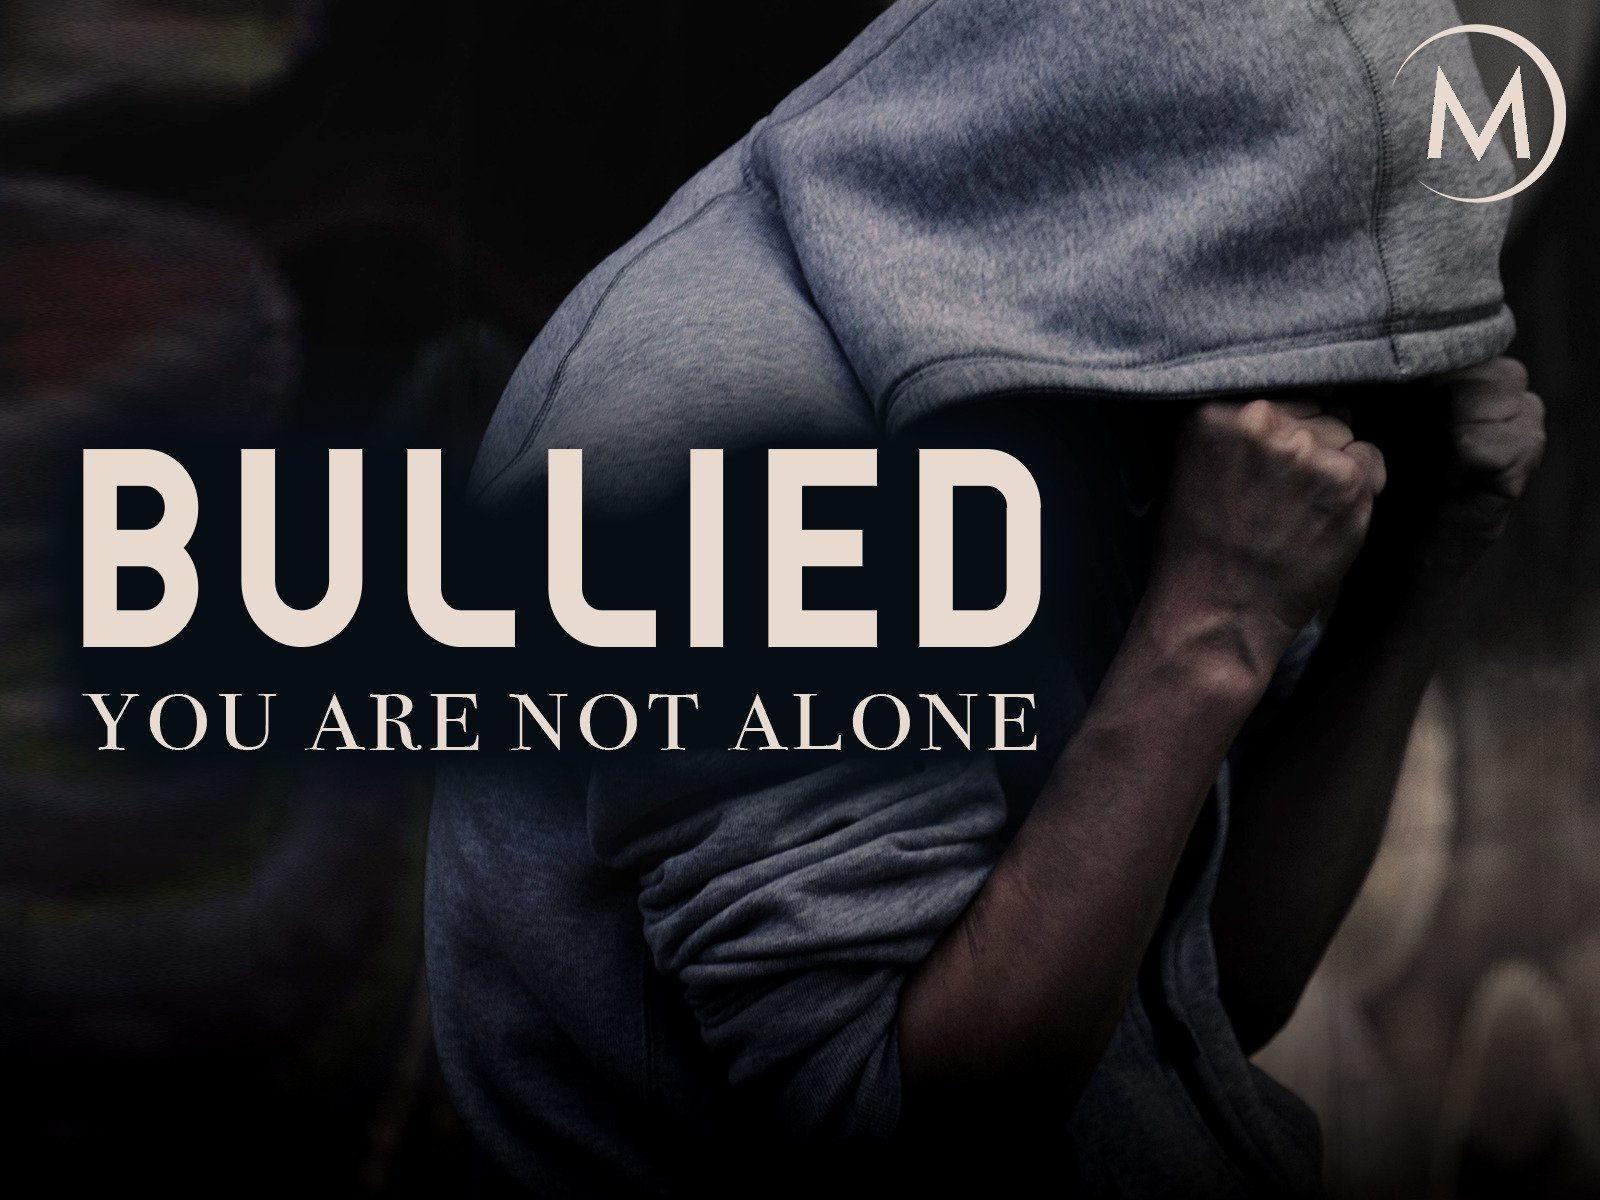 Bullied: You Are Not Alone - Season 1